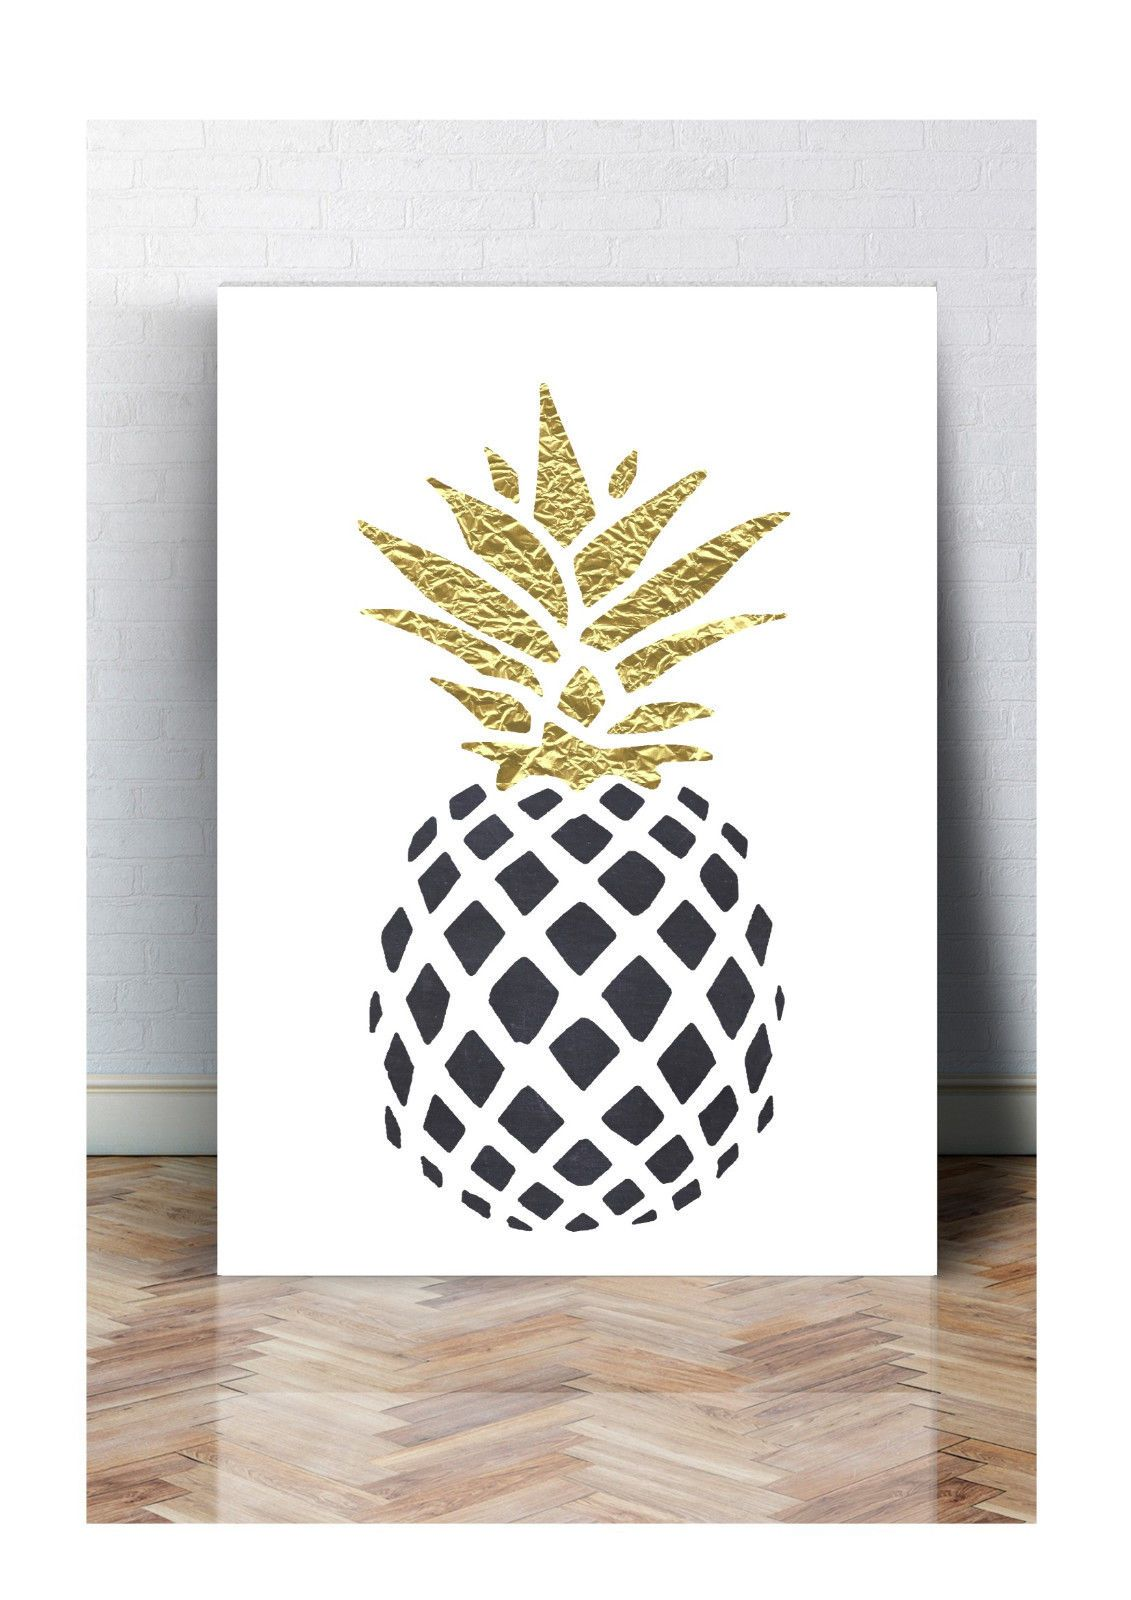 Annas Küche Druck Fineart Bild Poster Ananas Black Print A4 And A3